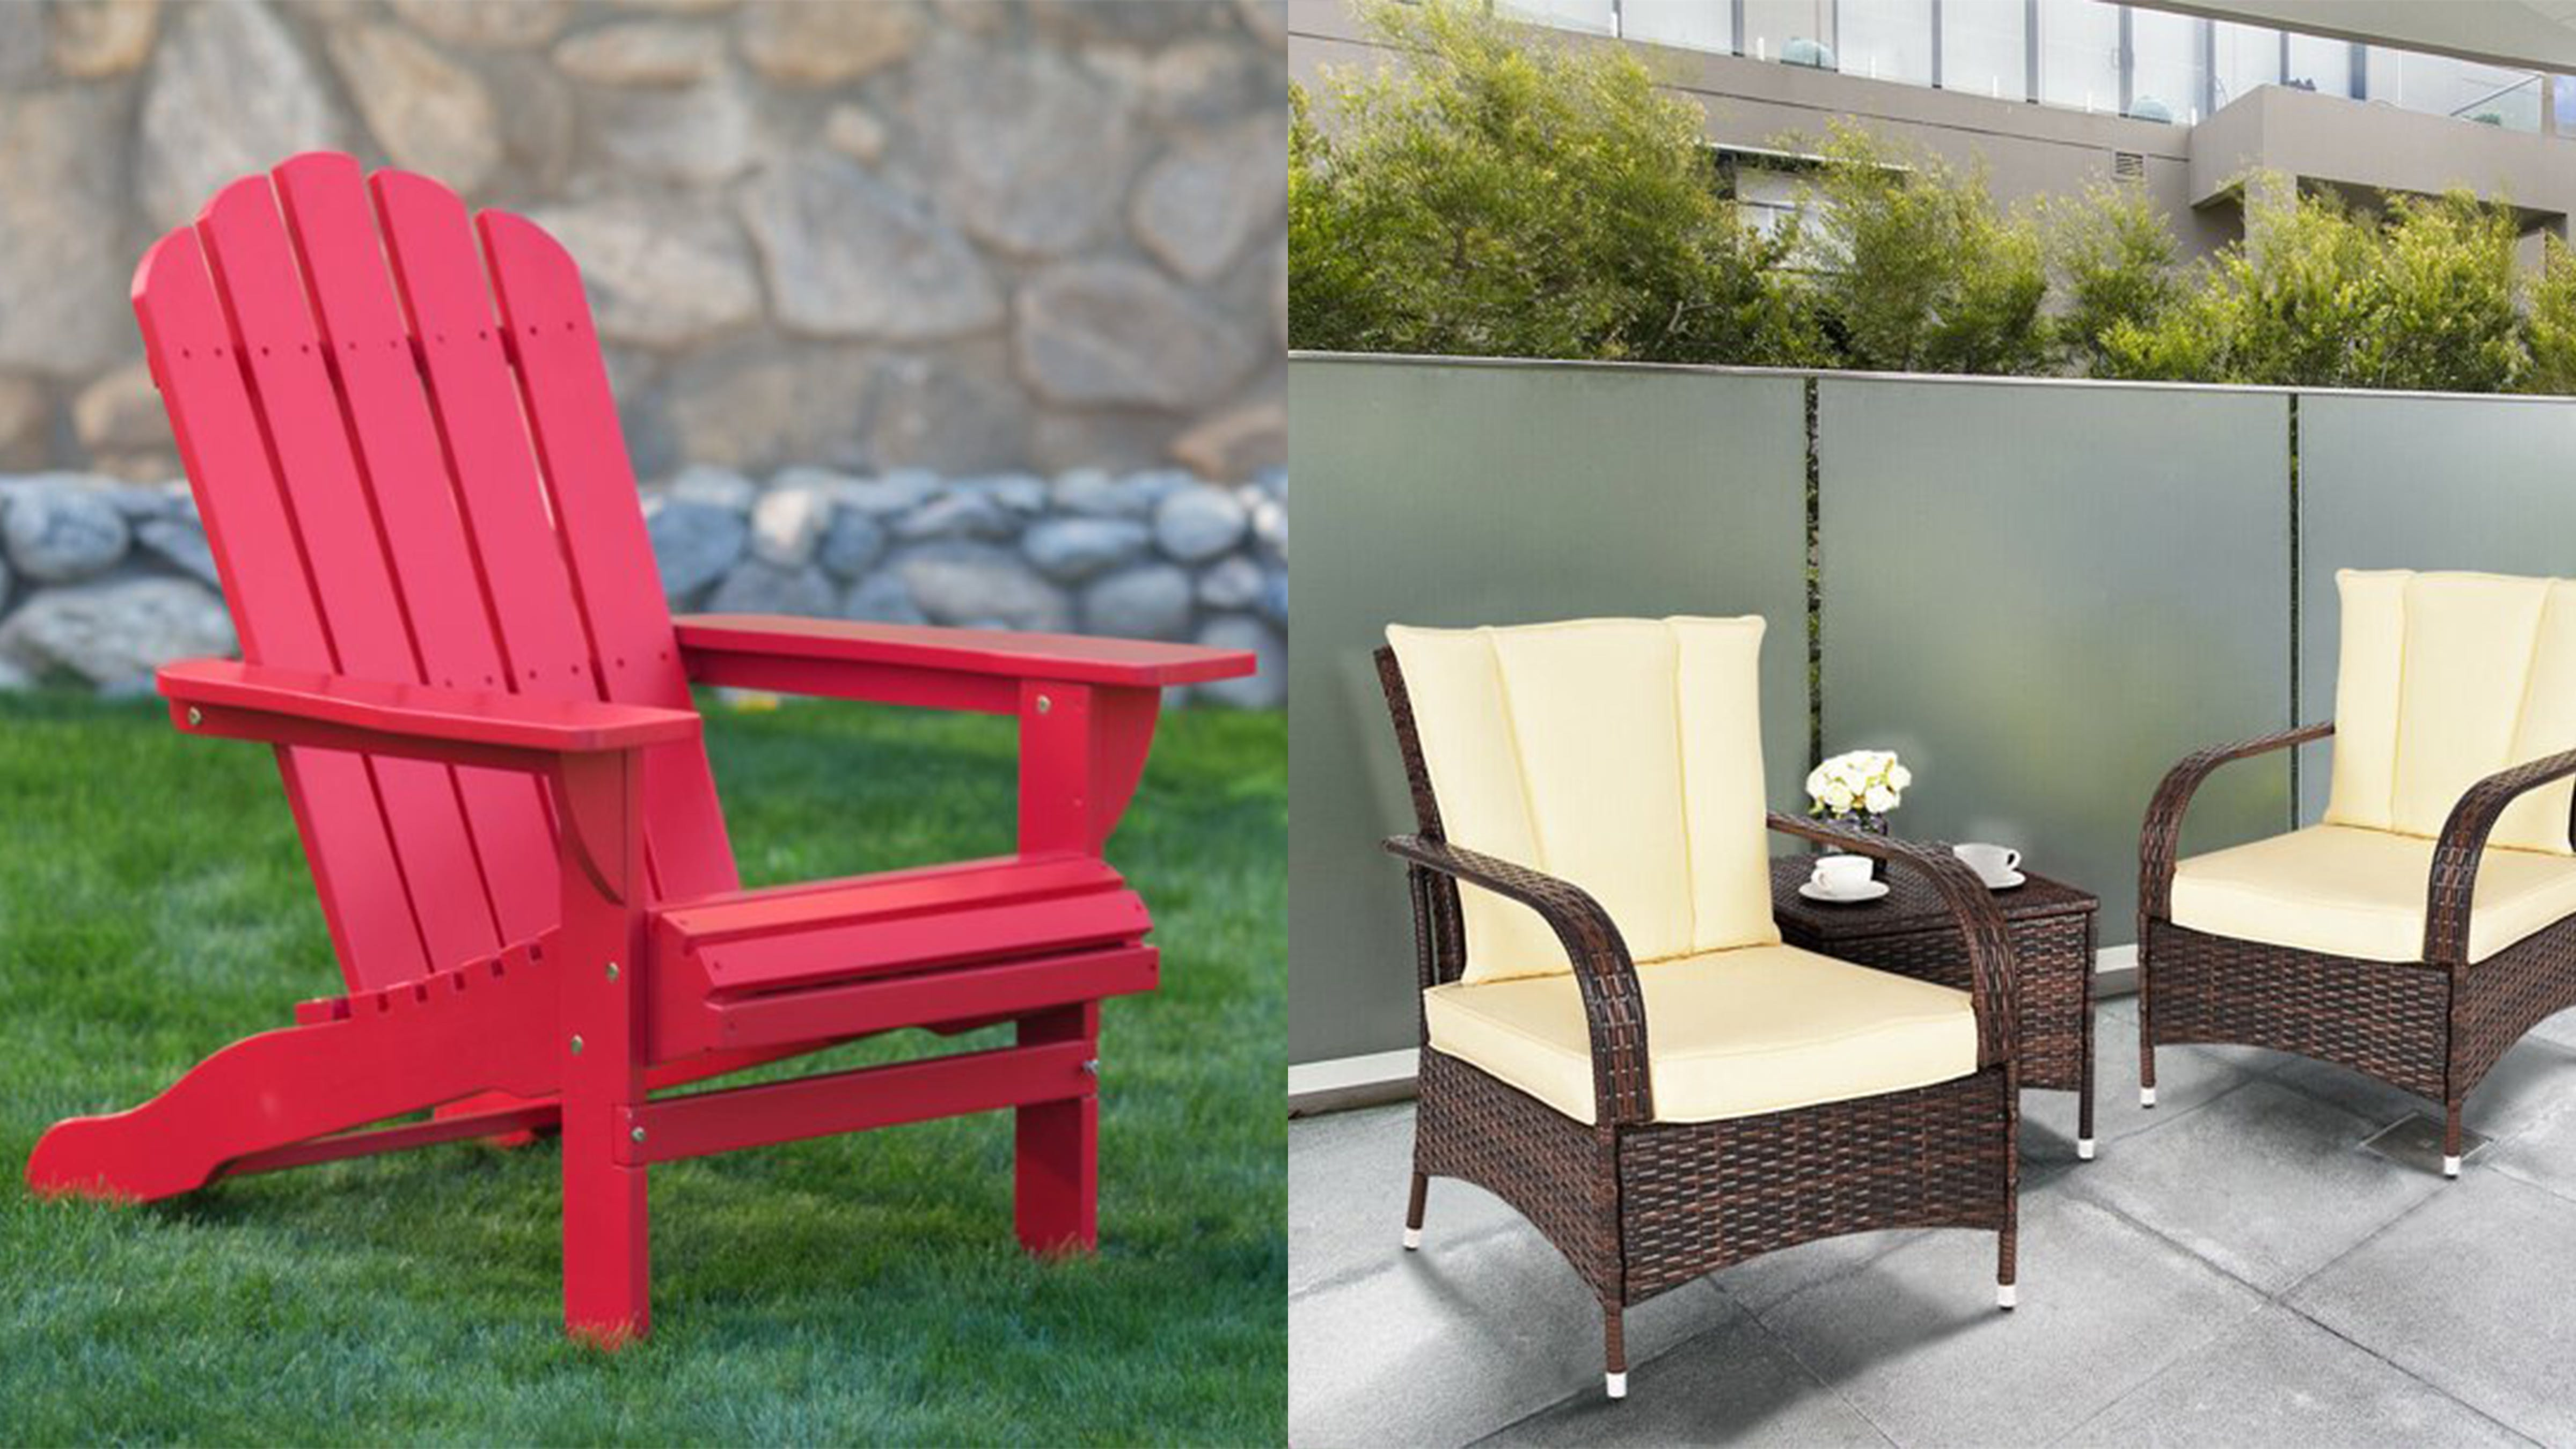 Patio Furniture Sale Save Up To 40 On Outdoor Pieces At Walmart